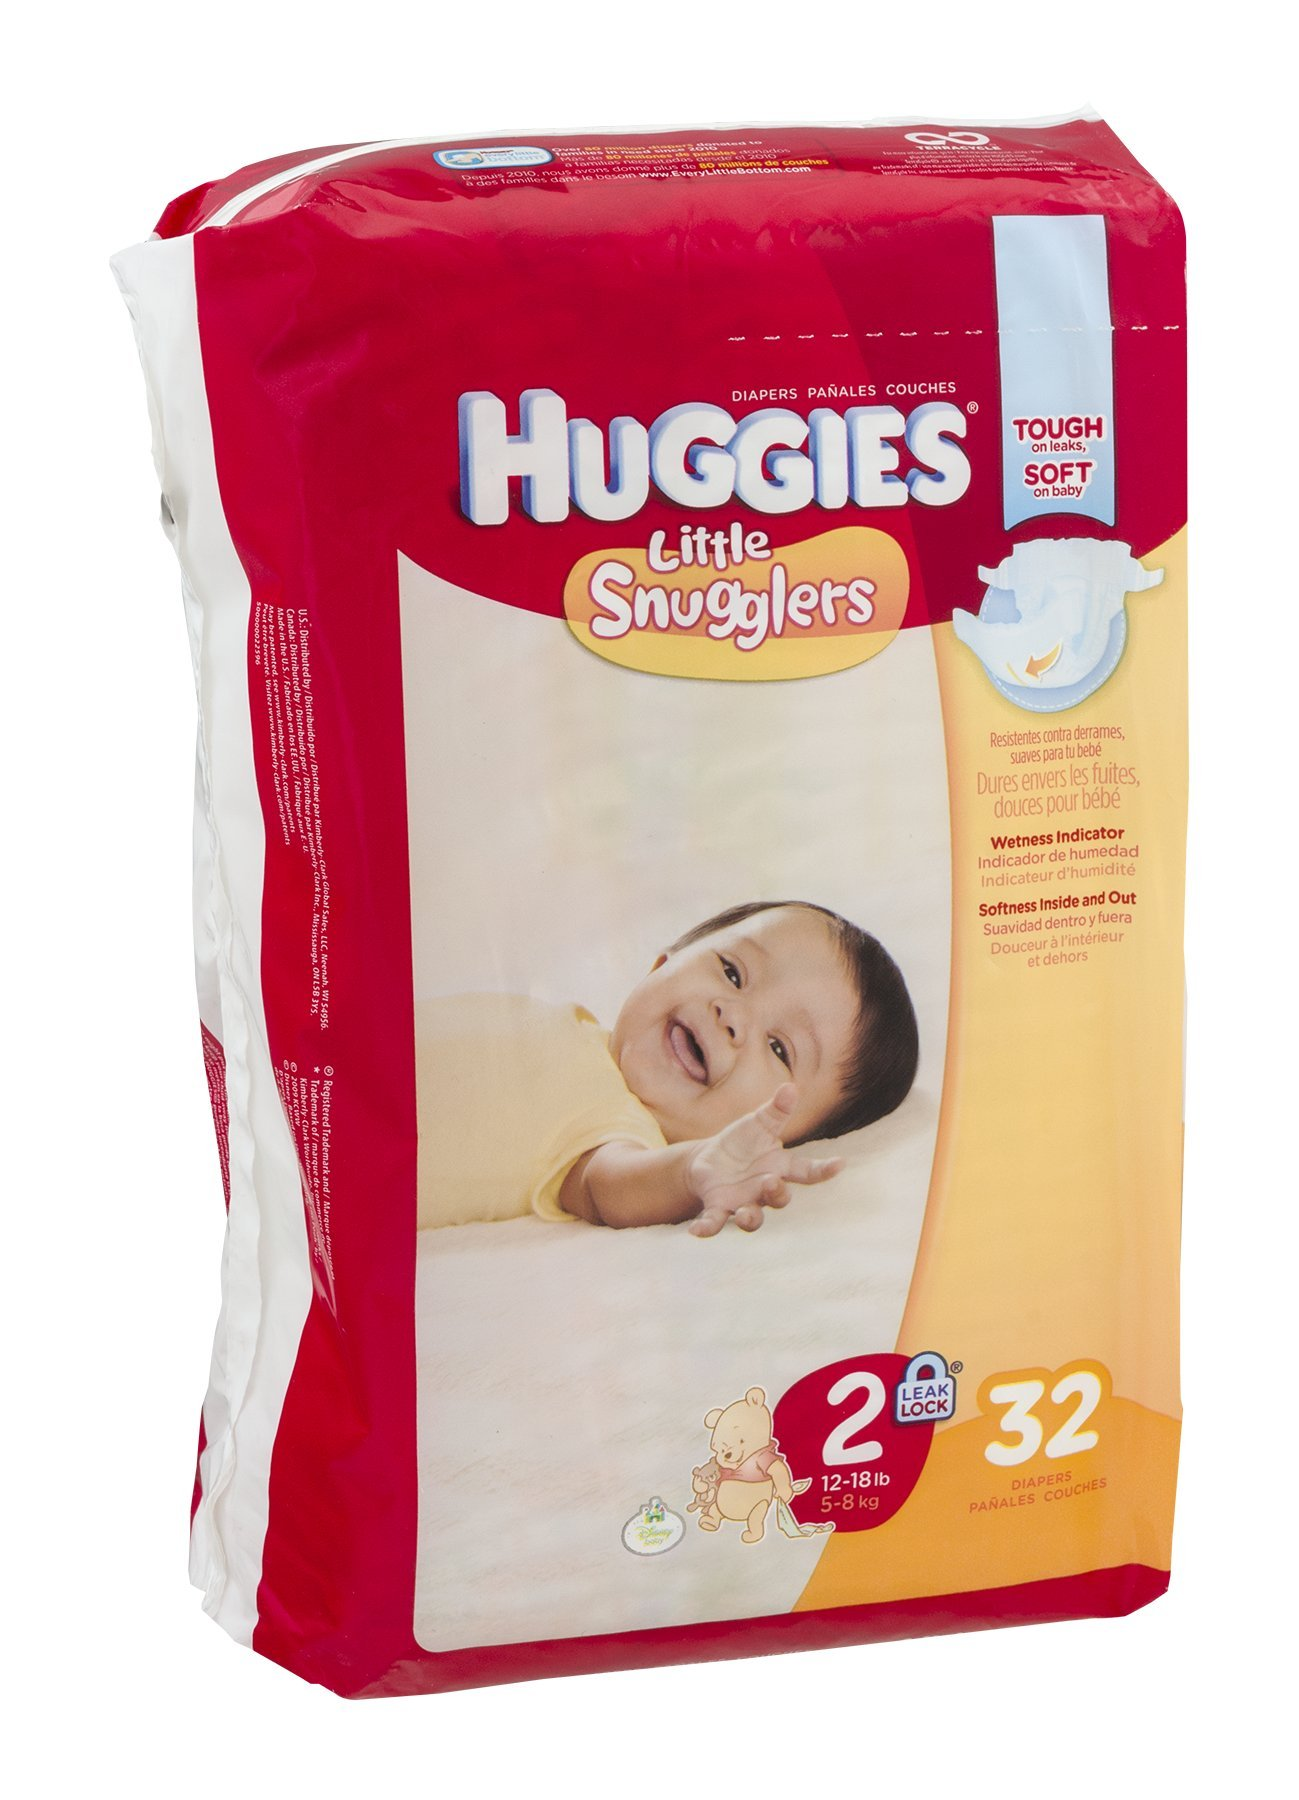 Huggies Little Snugglers Diapers Jumbo, Size 2, 12-18 lbs, 40765 (Case of 128)